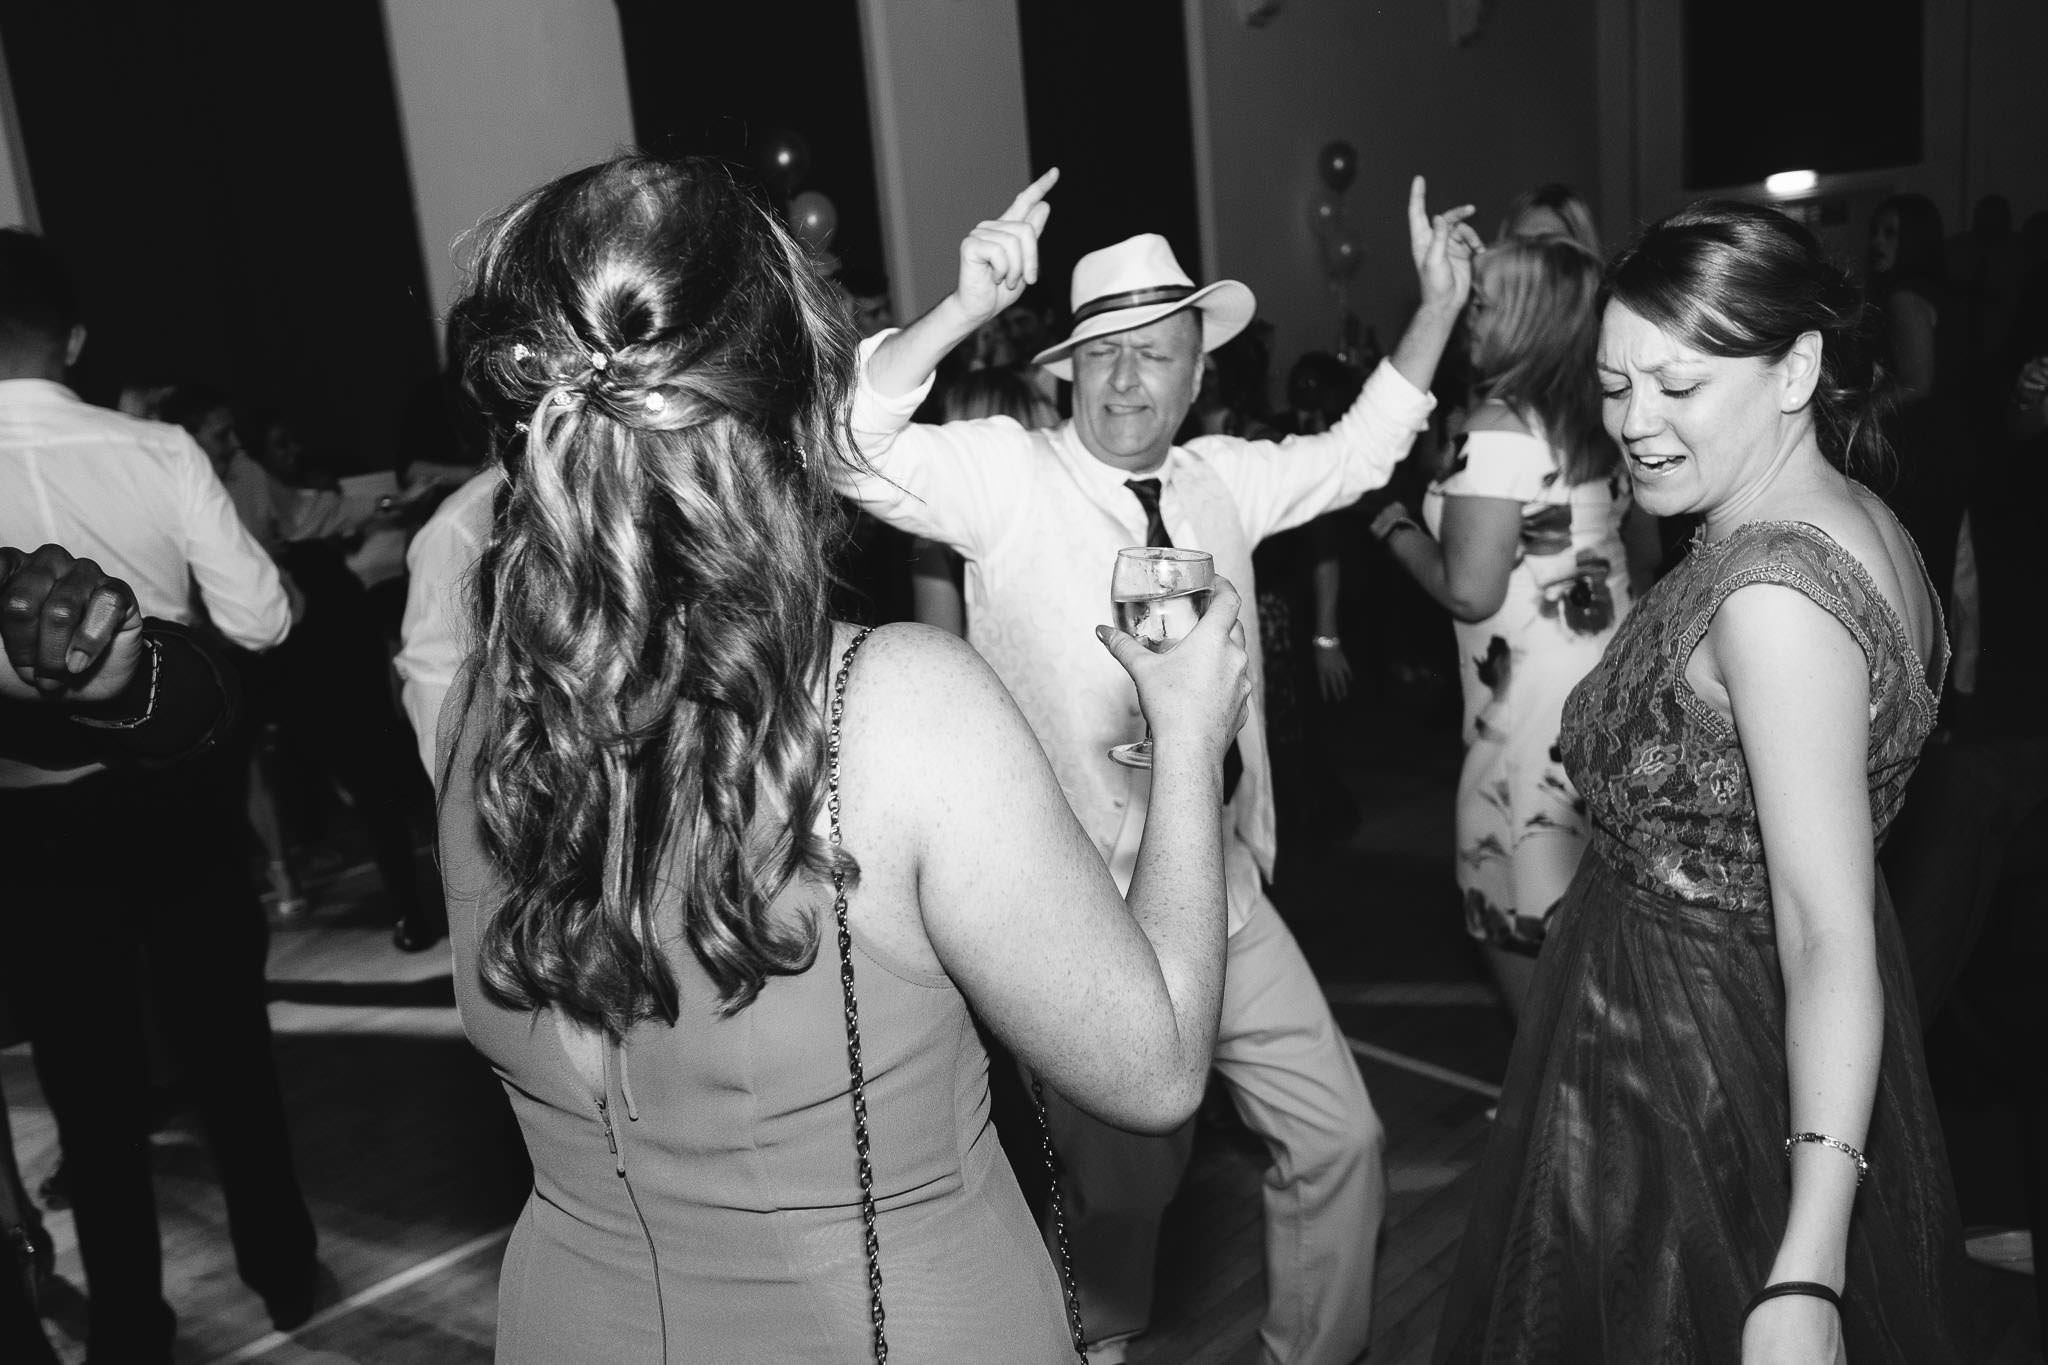 A black and white photo of a wedding guest and the bridesmaids dancing